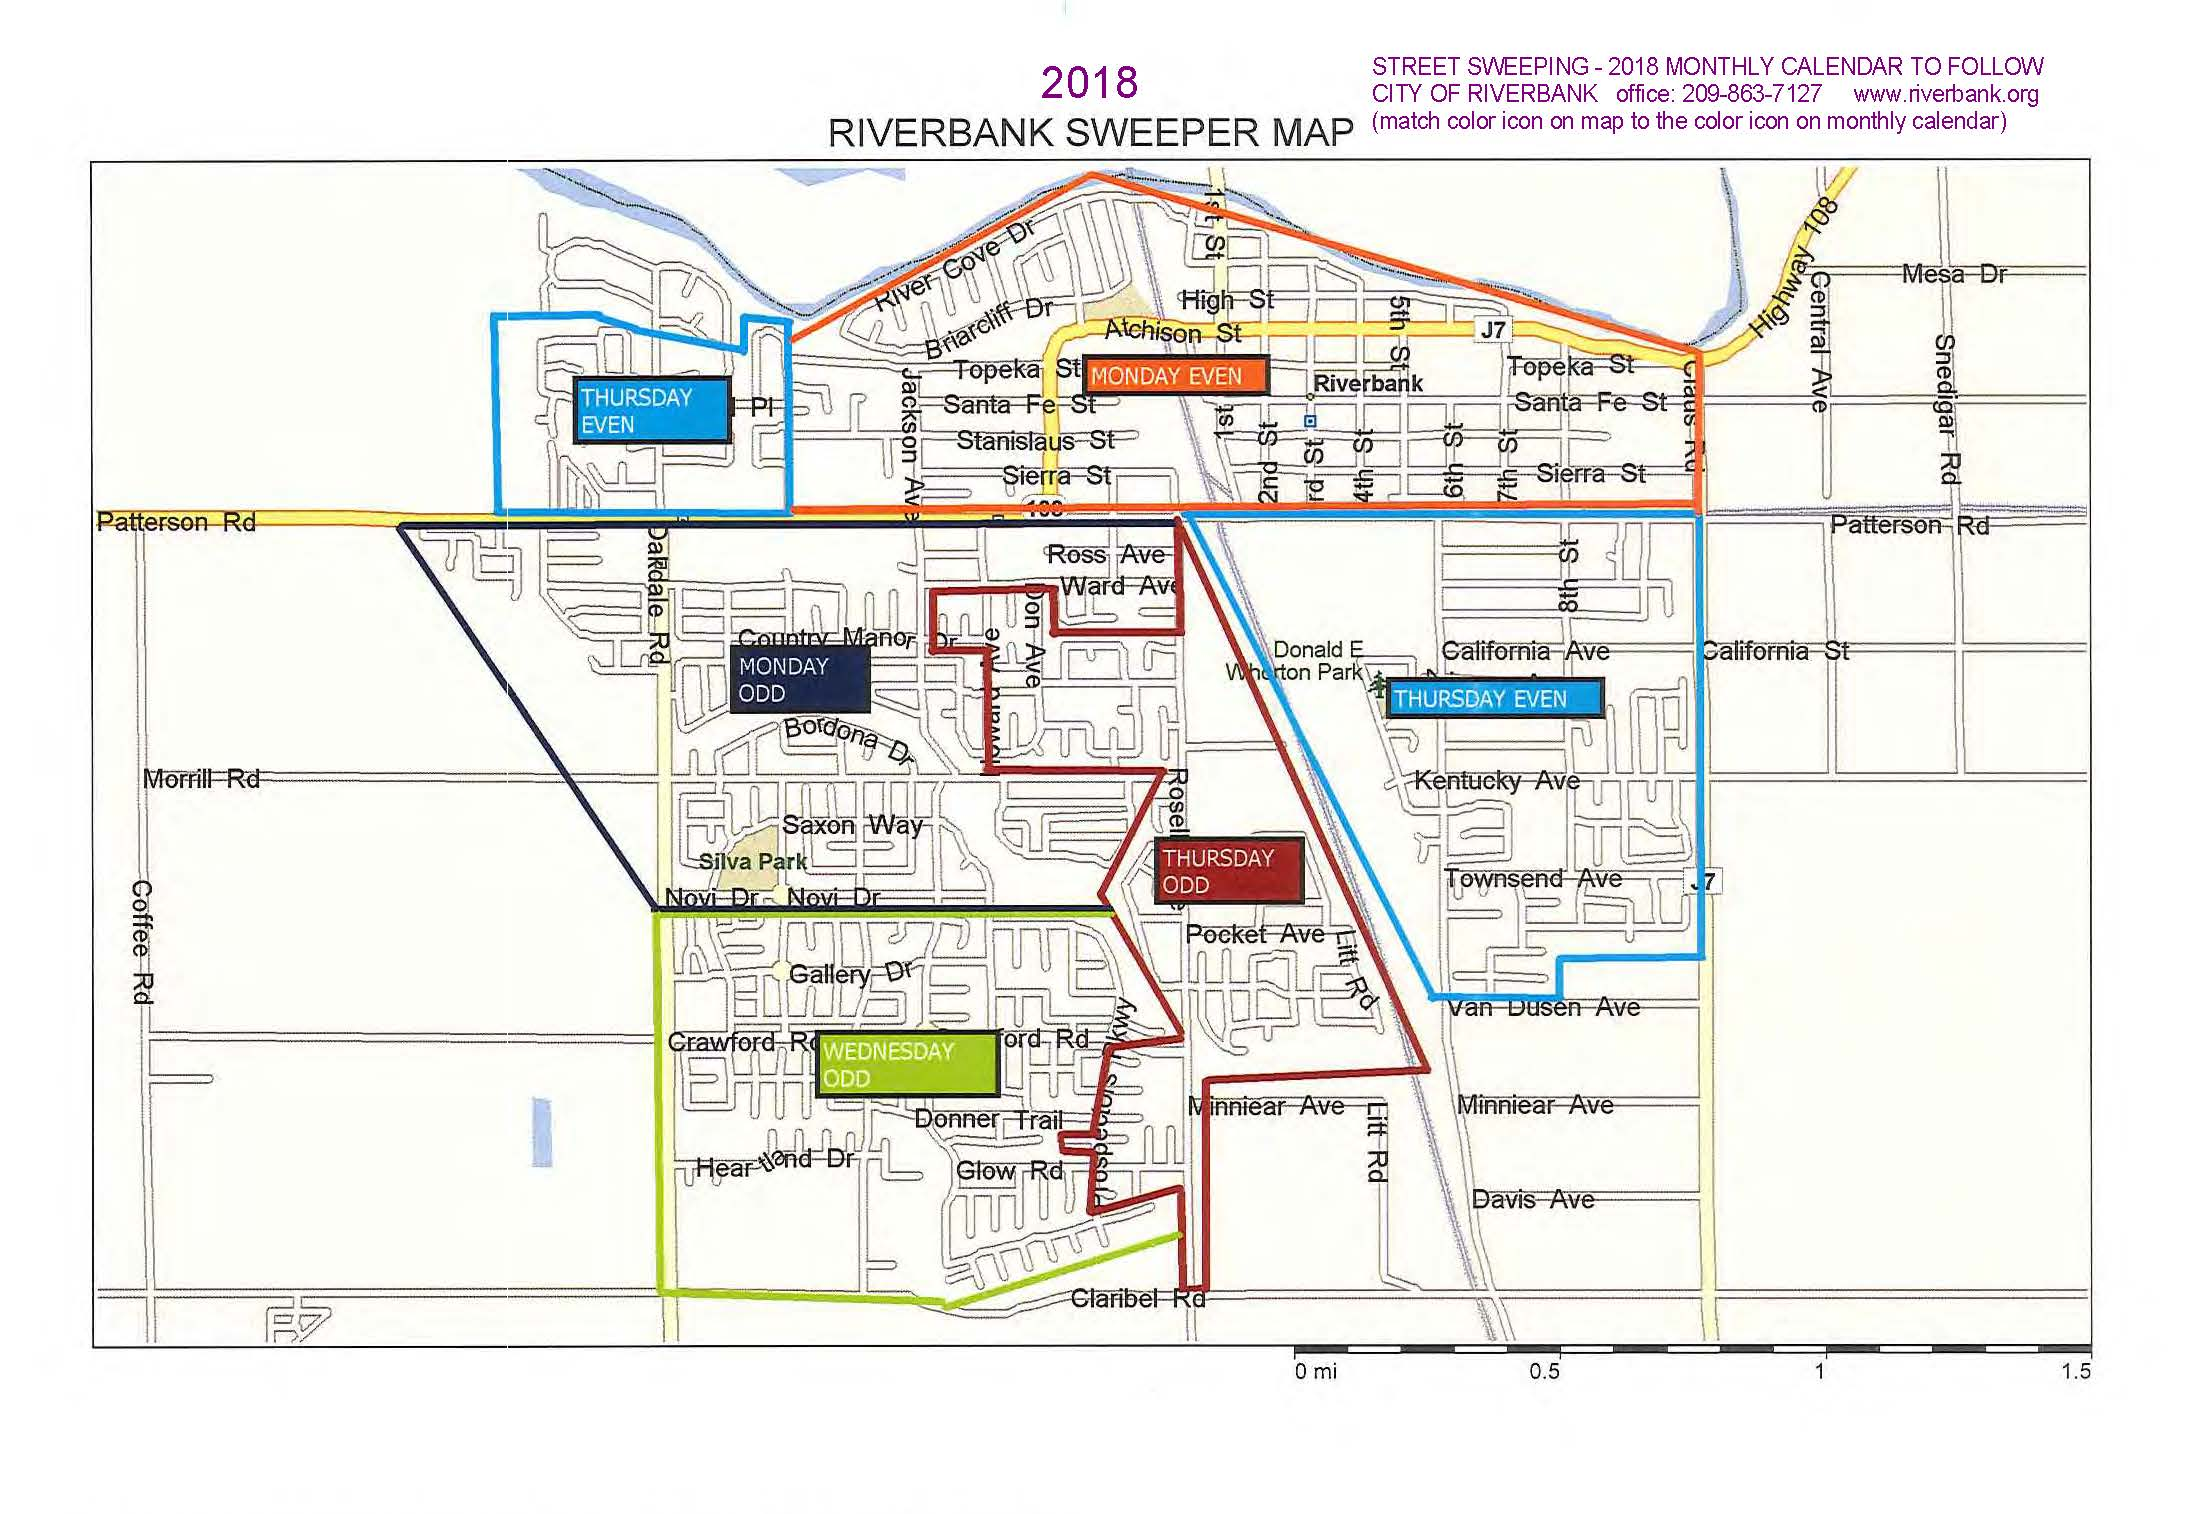 2018 RIVERBANK STREET SWEEPING MAP only.jpg